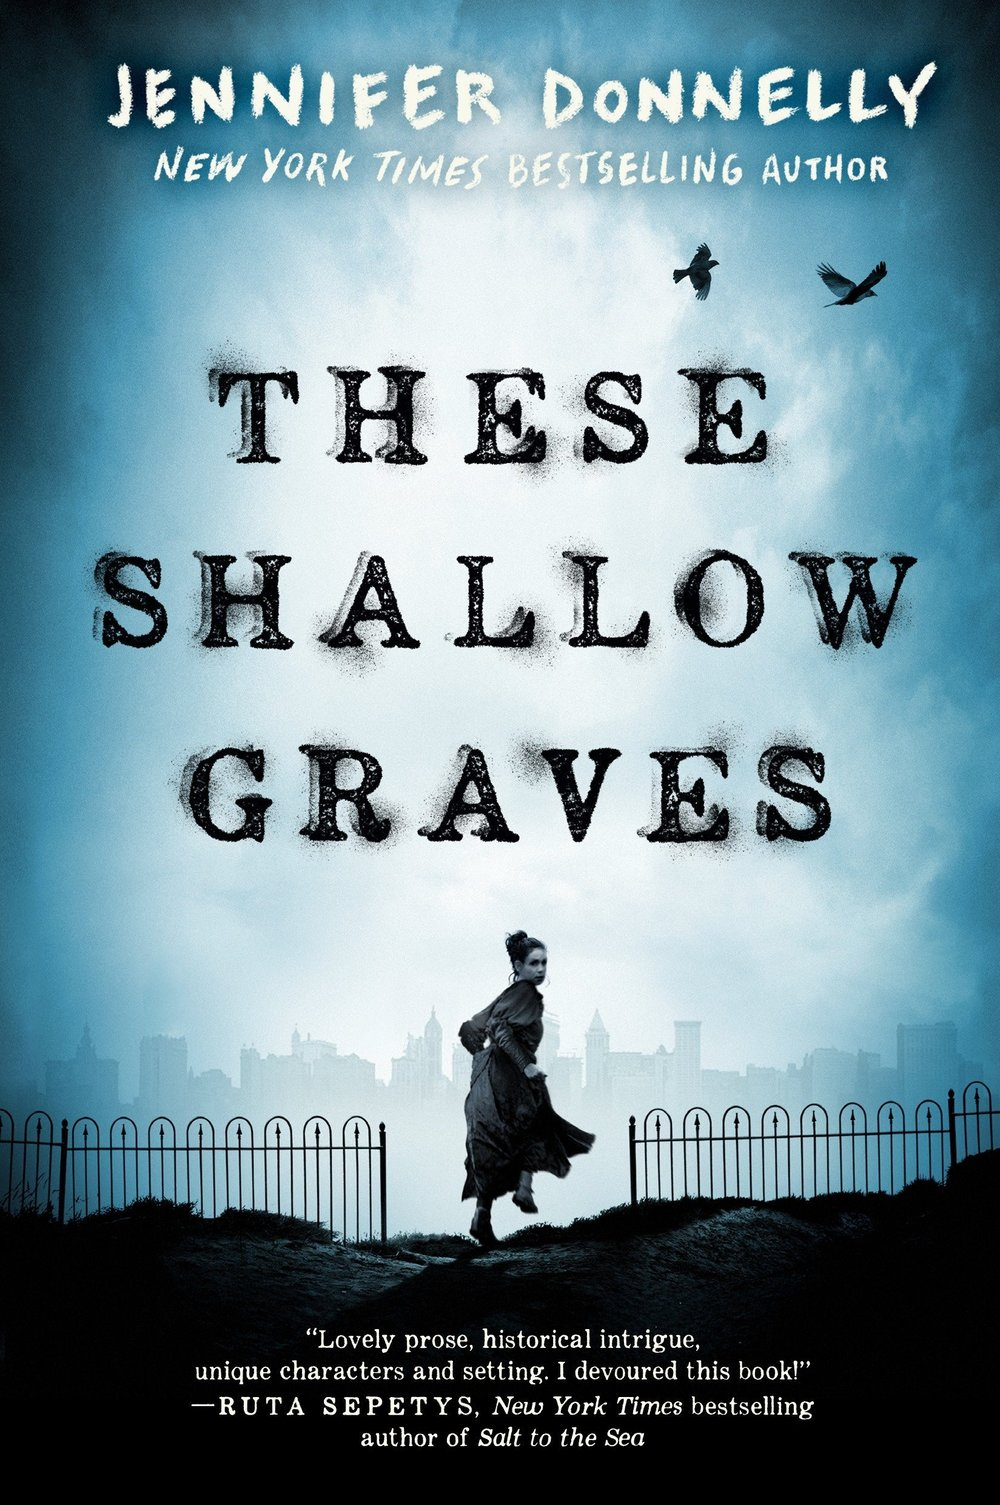 donnelly-shallow-graves.jpg